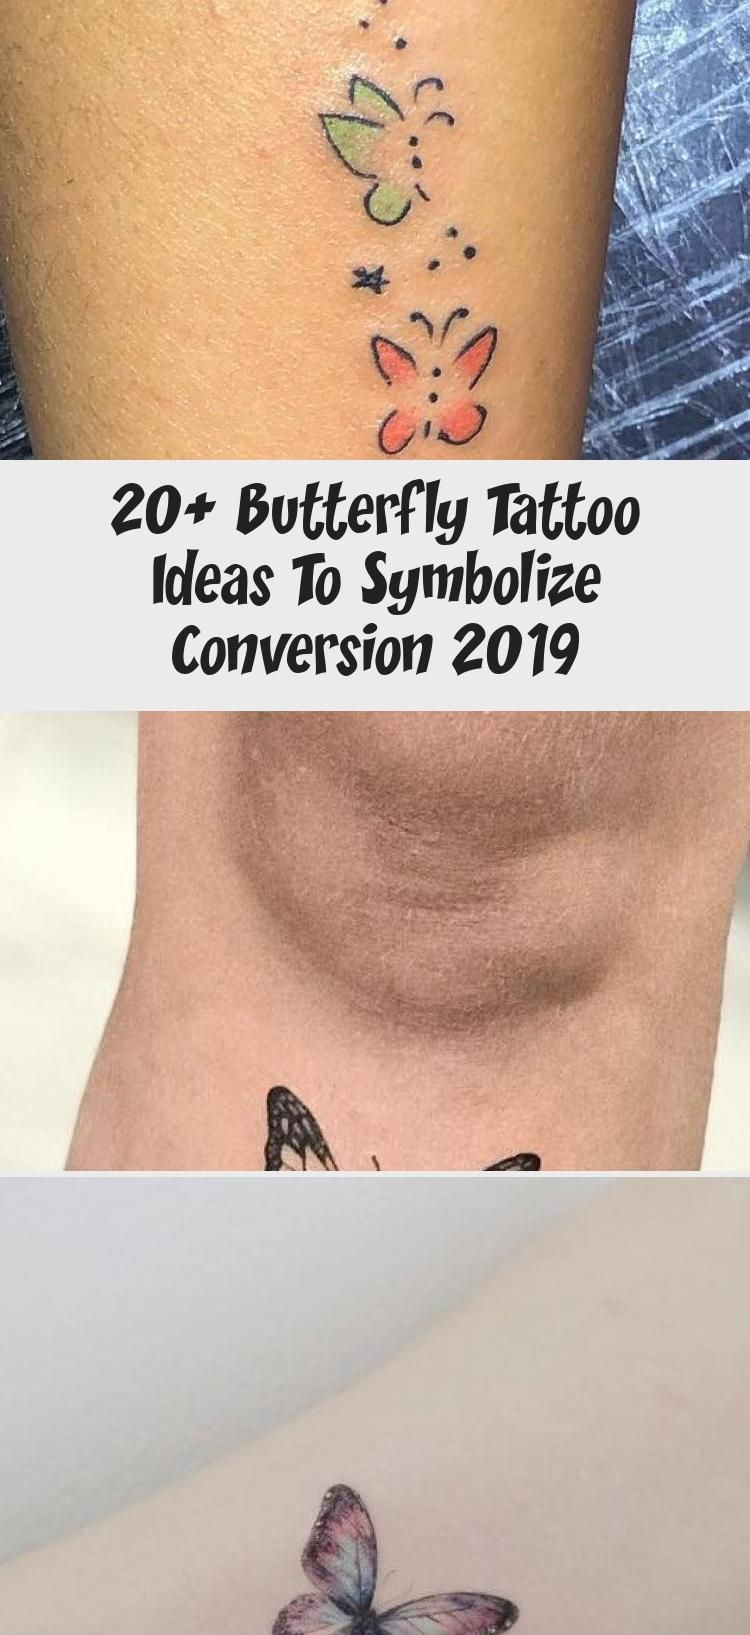 Photo of 20+ Butterfly Tattoo Ideas To Symbolize Conversion 2019 – Best Tattoos